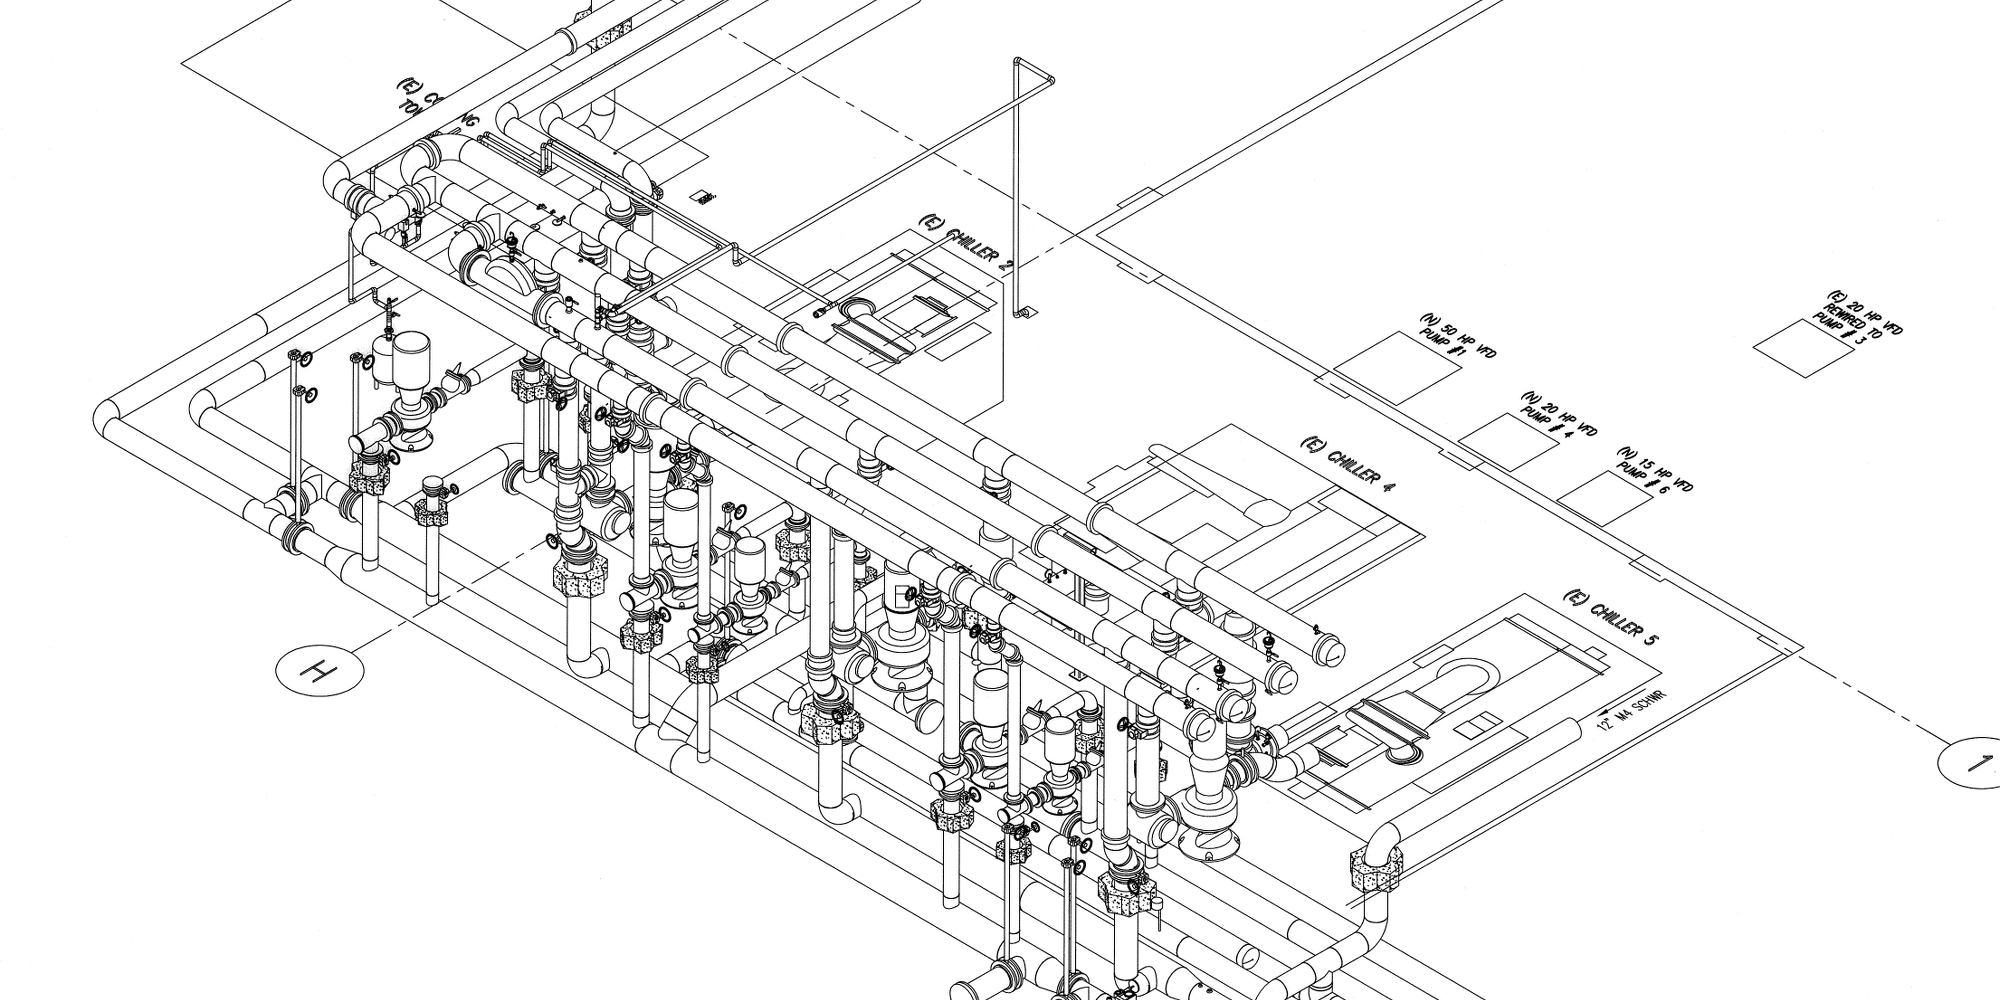 hight resolution of computer aided design cad showing a process chilled water system and other related equipment